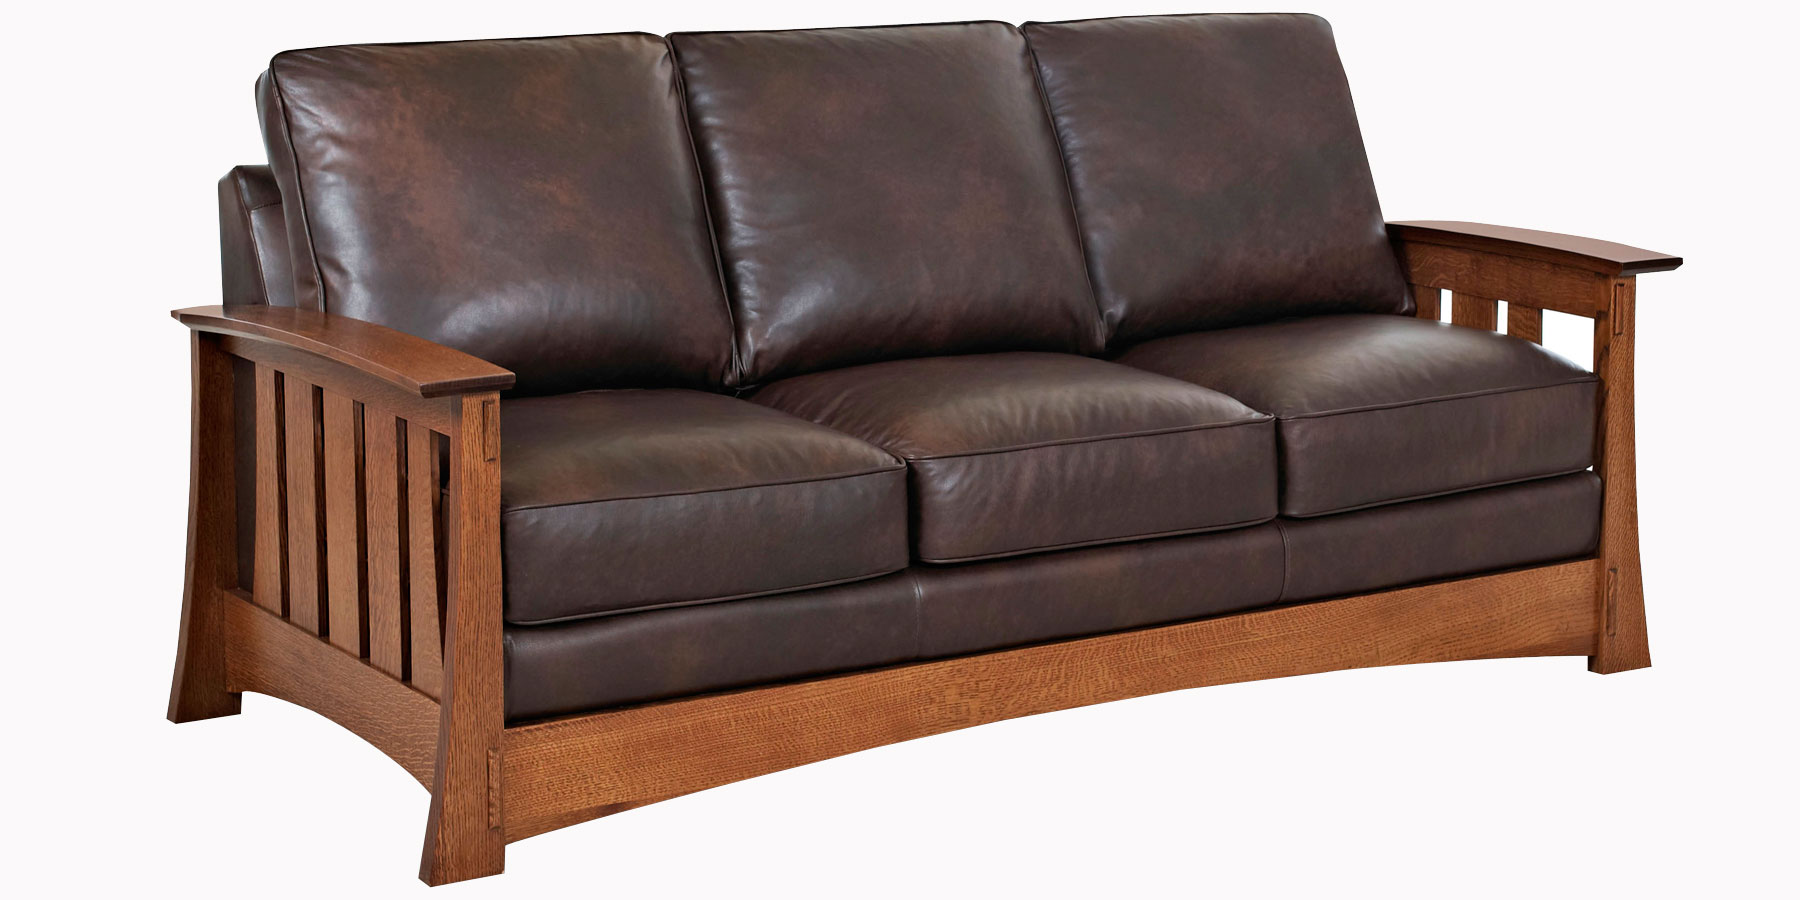 Mission Style Leather Pillow Back Chairs Amp Sofas